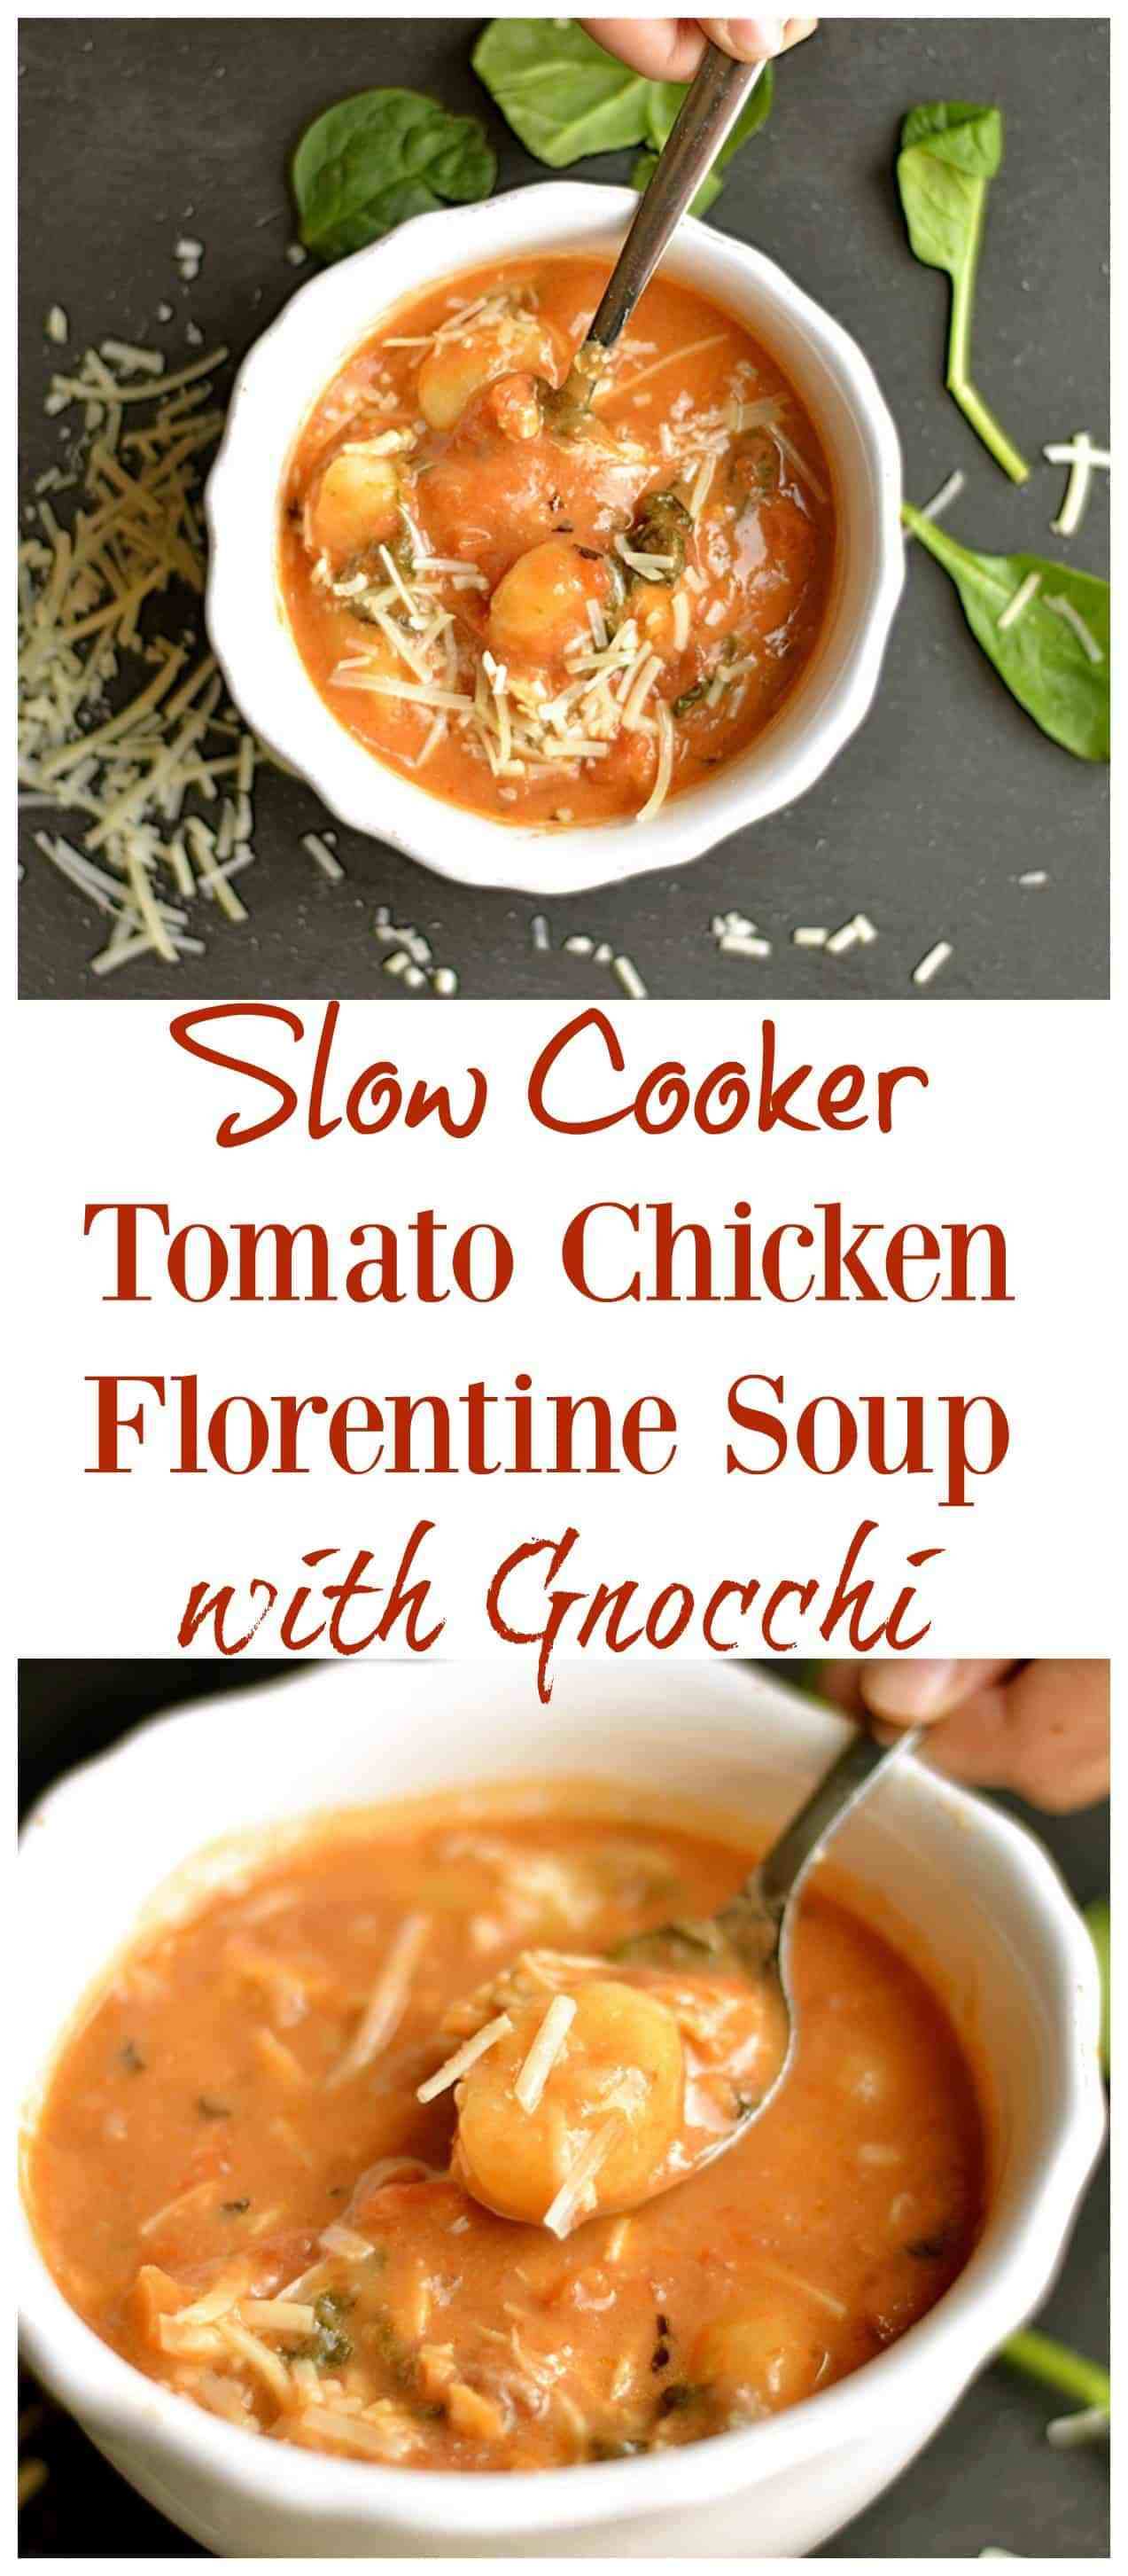 Chicken Florentine Soup  Slow Cooker Tomato Chicken Florentine Soup with Gnocchi